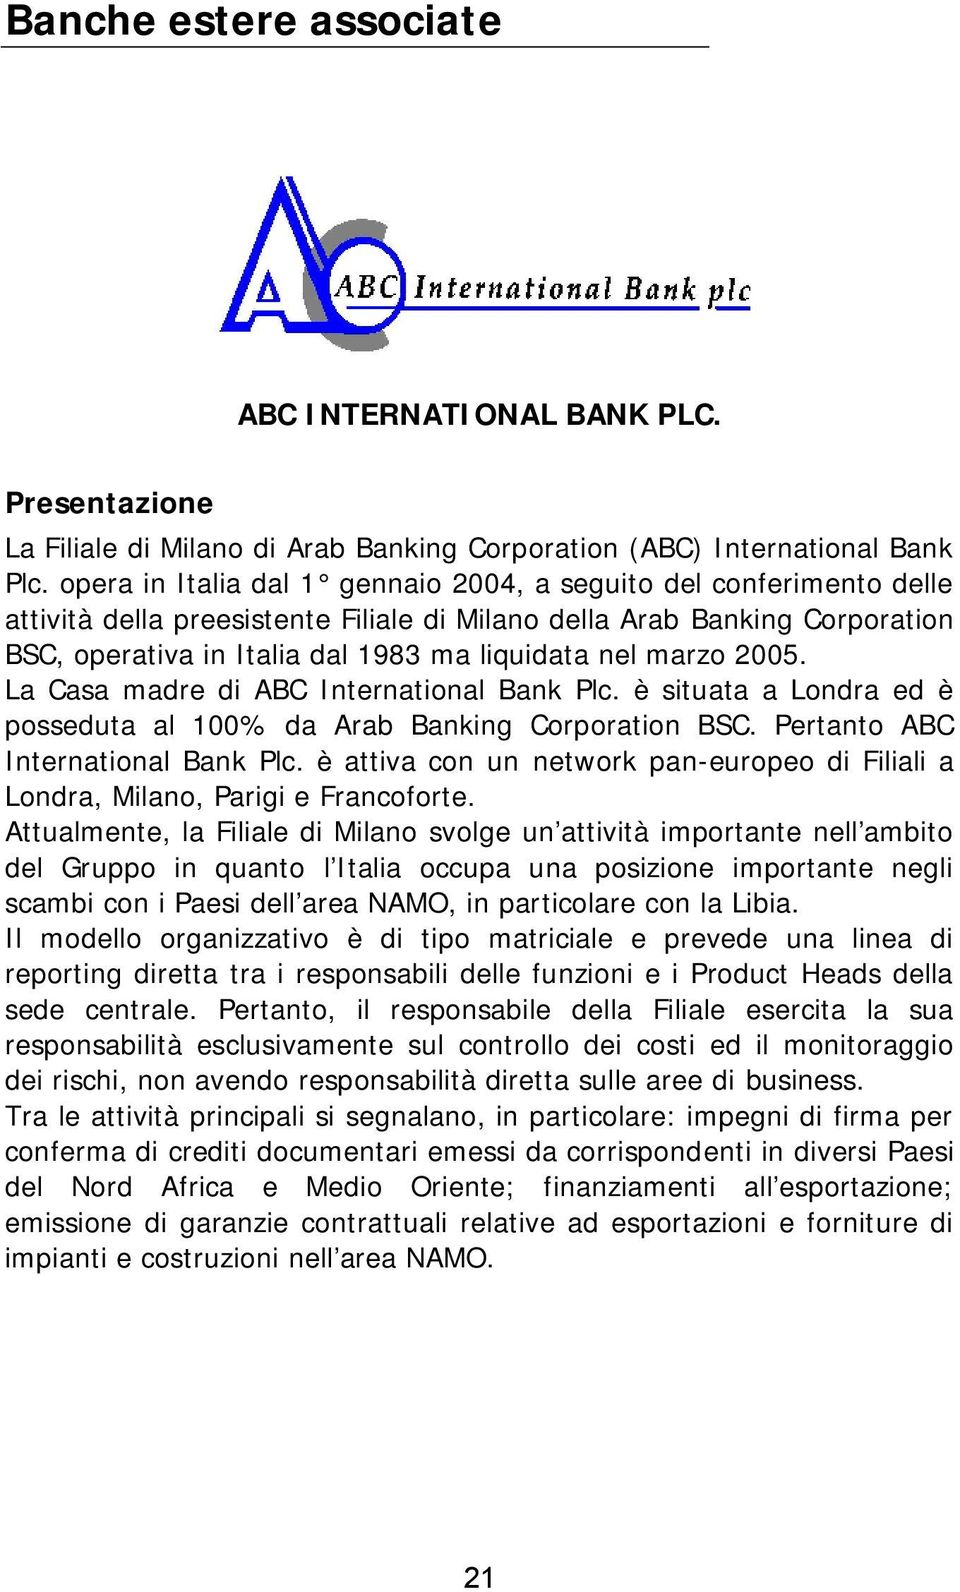 marzo 2005. La Casa madre di ABC International Bank Plc. è situata a Londra ed è posseduta al 100% da Arab Banking Corporation BSC. Pertanto ABC International Bank Plc.